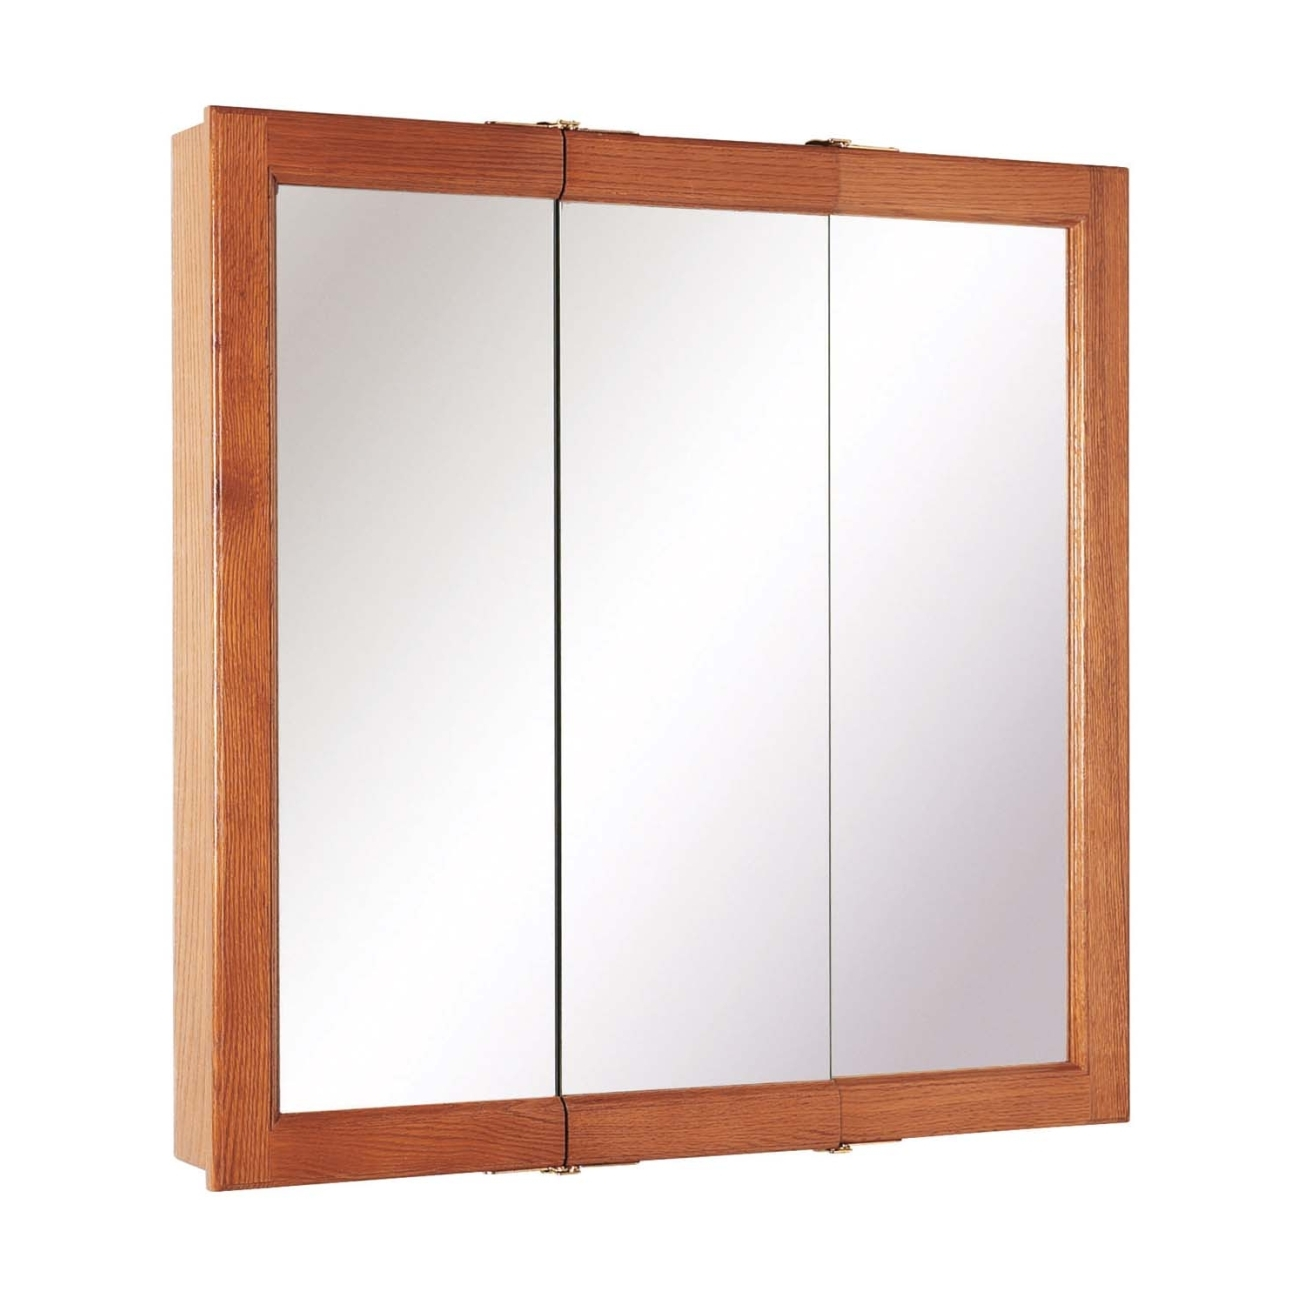 Bathroom Medicine Cabinet Replacement Doorsreplacement medicine cabinet mirror maxi design solution